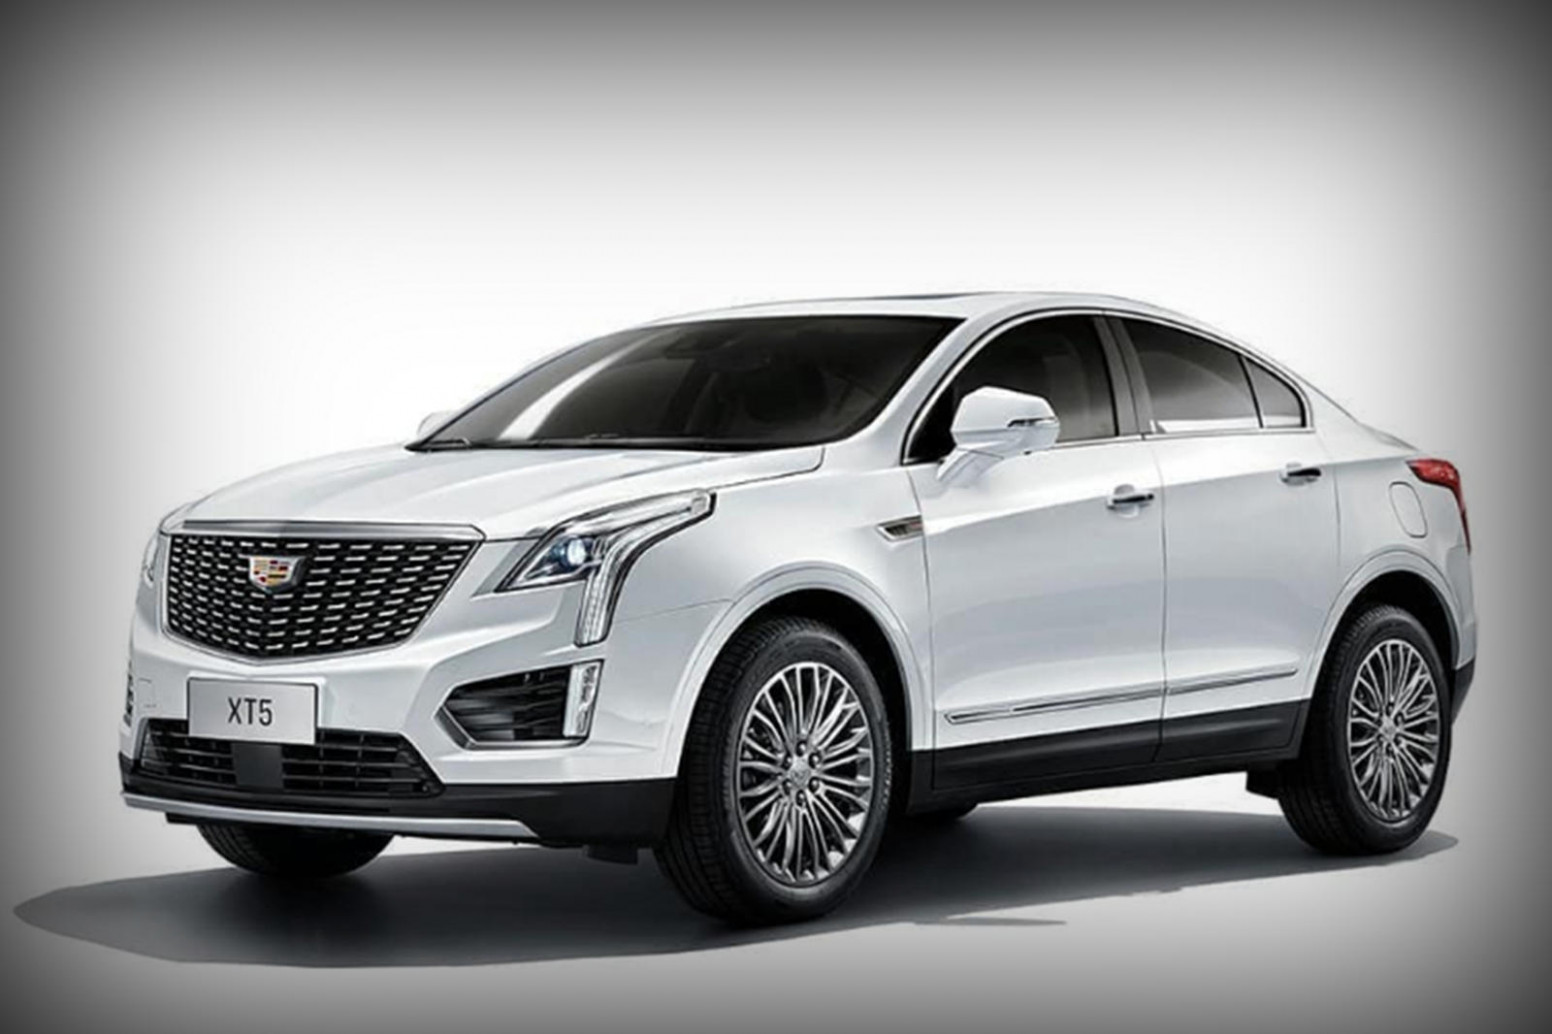 Images When Will The 2022 Cadillac Xt5 Be Available